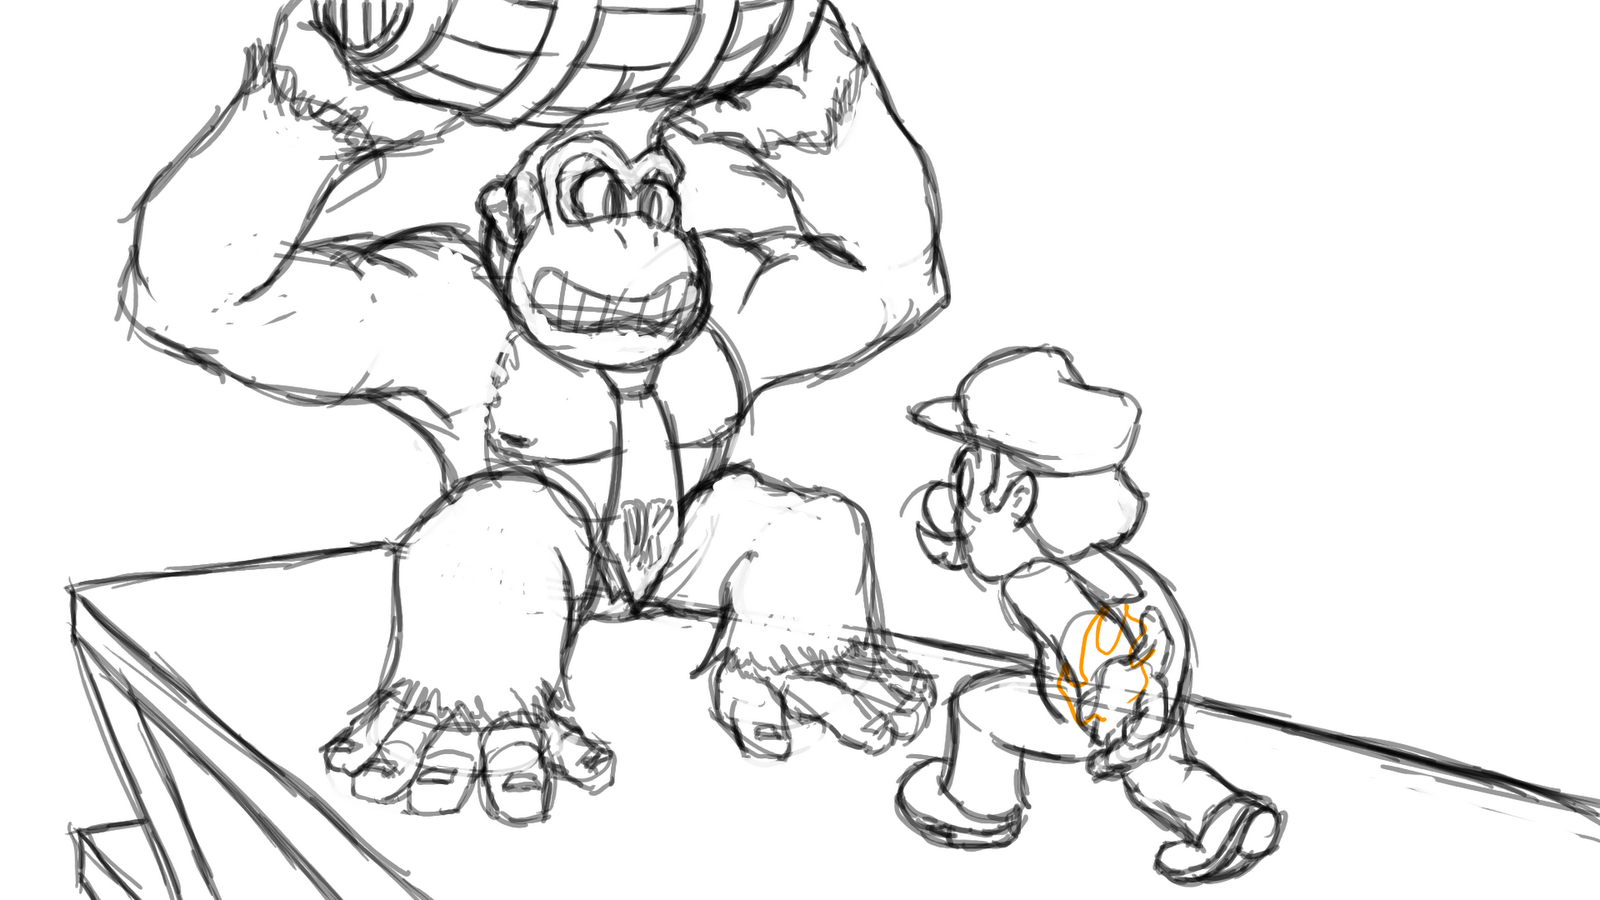 donkey kong coloring pages to print donkey kong coloring pages to download and print for free pages to donkey print coloring kong